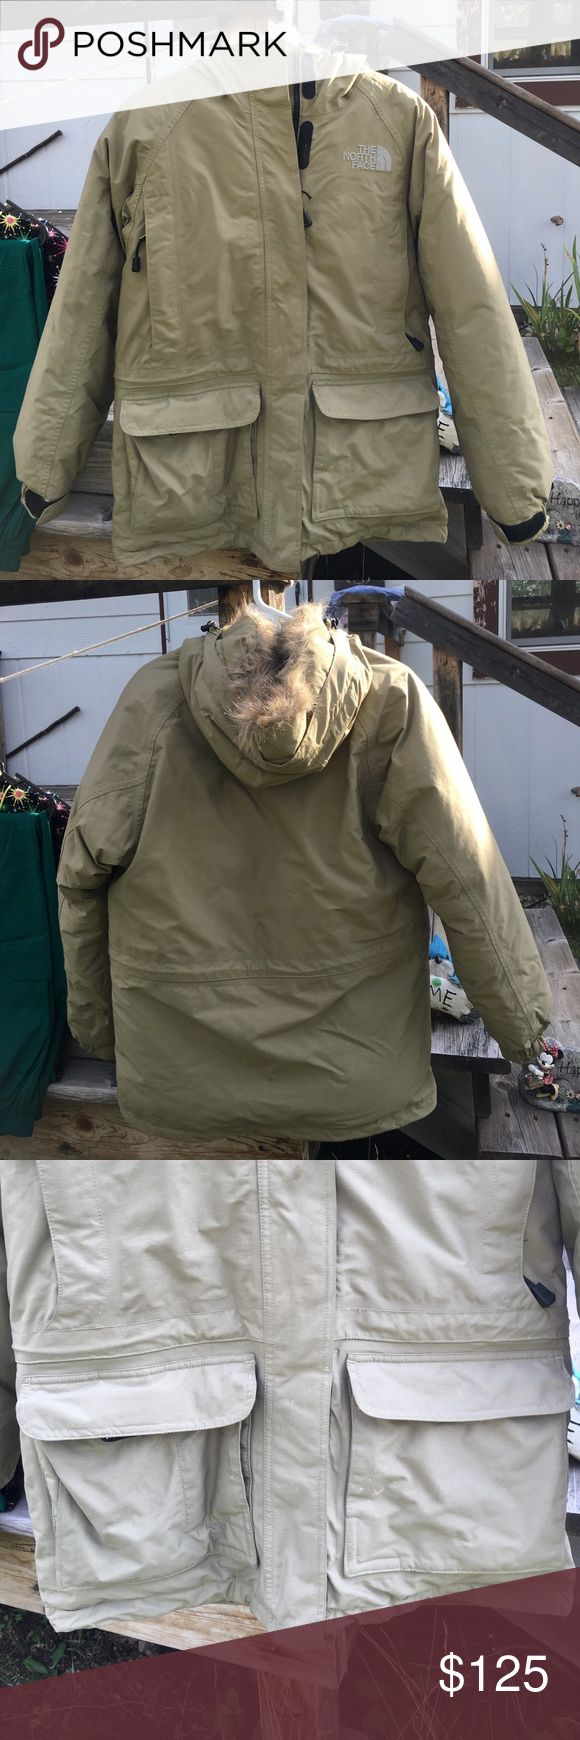 North Face Parka Jacket EUC Like New North Face Parka Jacket EUC Like New Lots of pockets Insulated Women's Regular Small Petite Made in Bangladesh Shell is 100%Nylon Lining 100% Polyester Insulation Goose Down zips up the front and have Velcro tabs for extra warmth The North Face Jackets & Coats